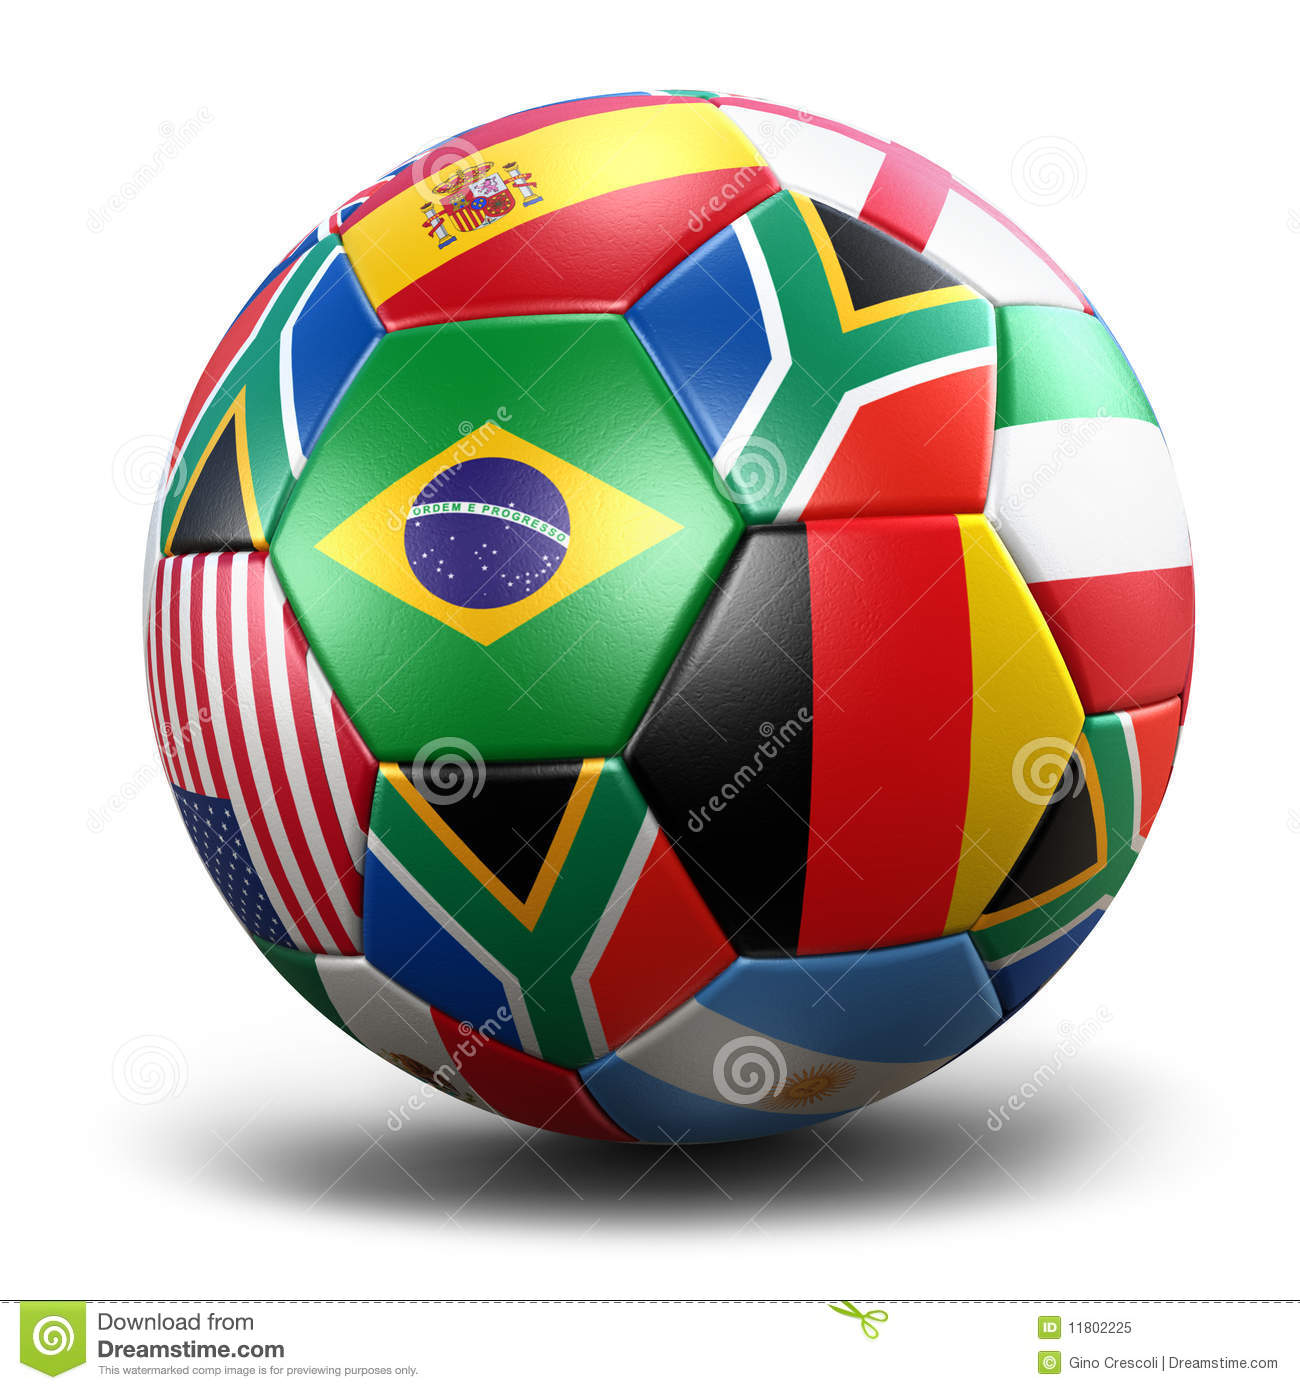 World Cup Soccer Ball Royalty Free Stock Photo.